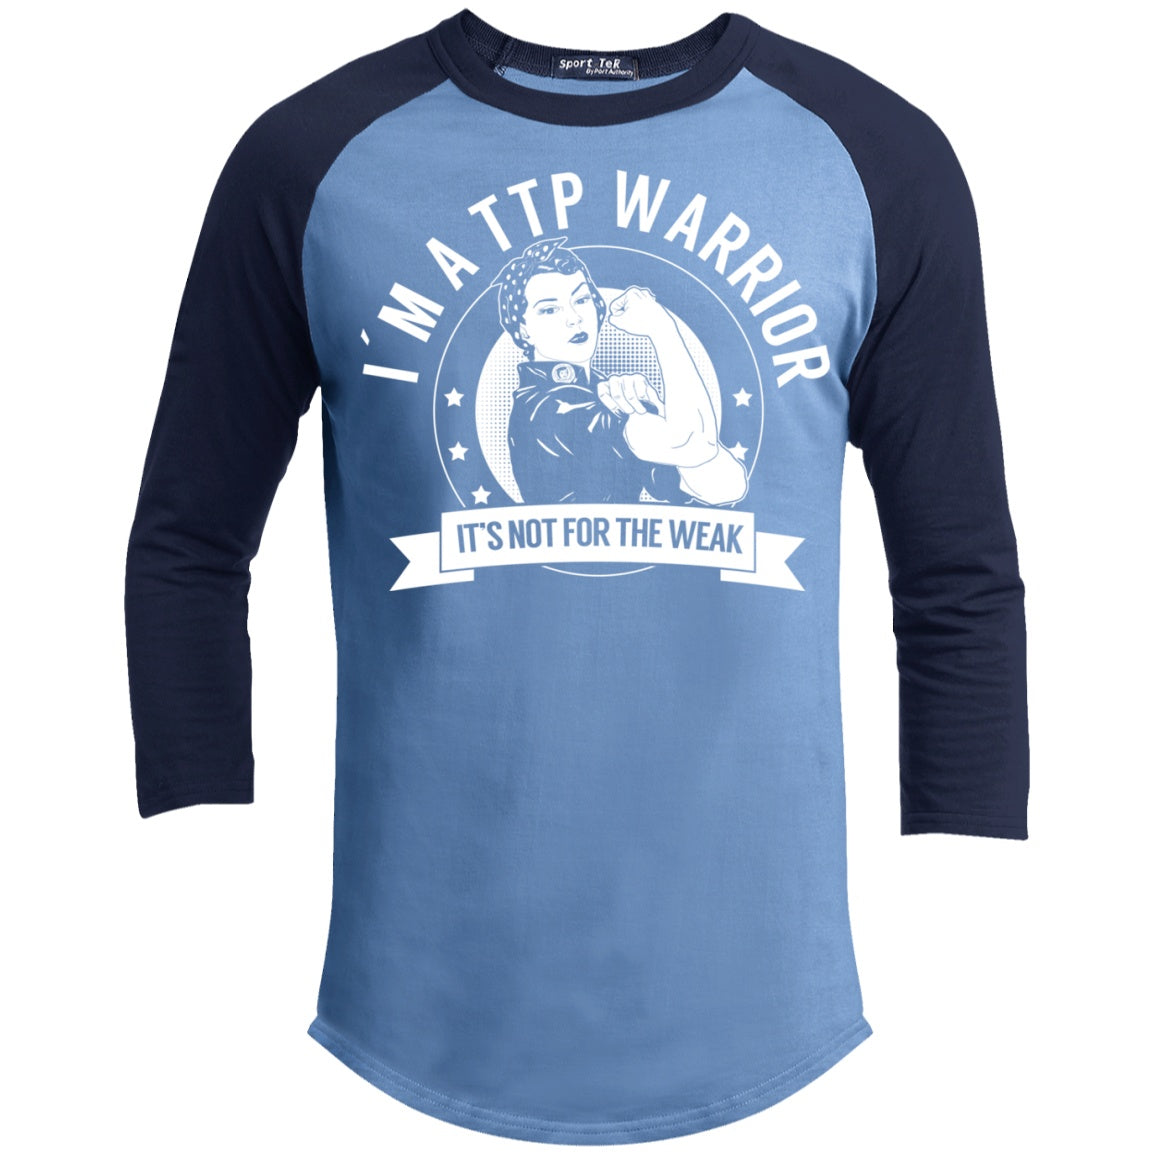 Thrombotic Thrombocytopenic Purpura - TTP Warrior NFTW Baseball Shirt - The Unchargeables